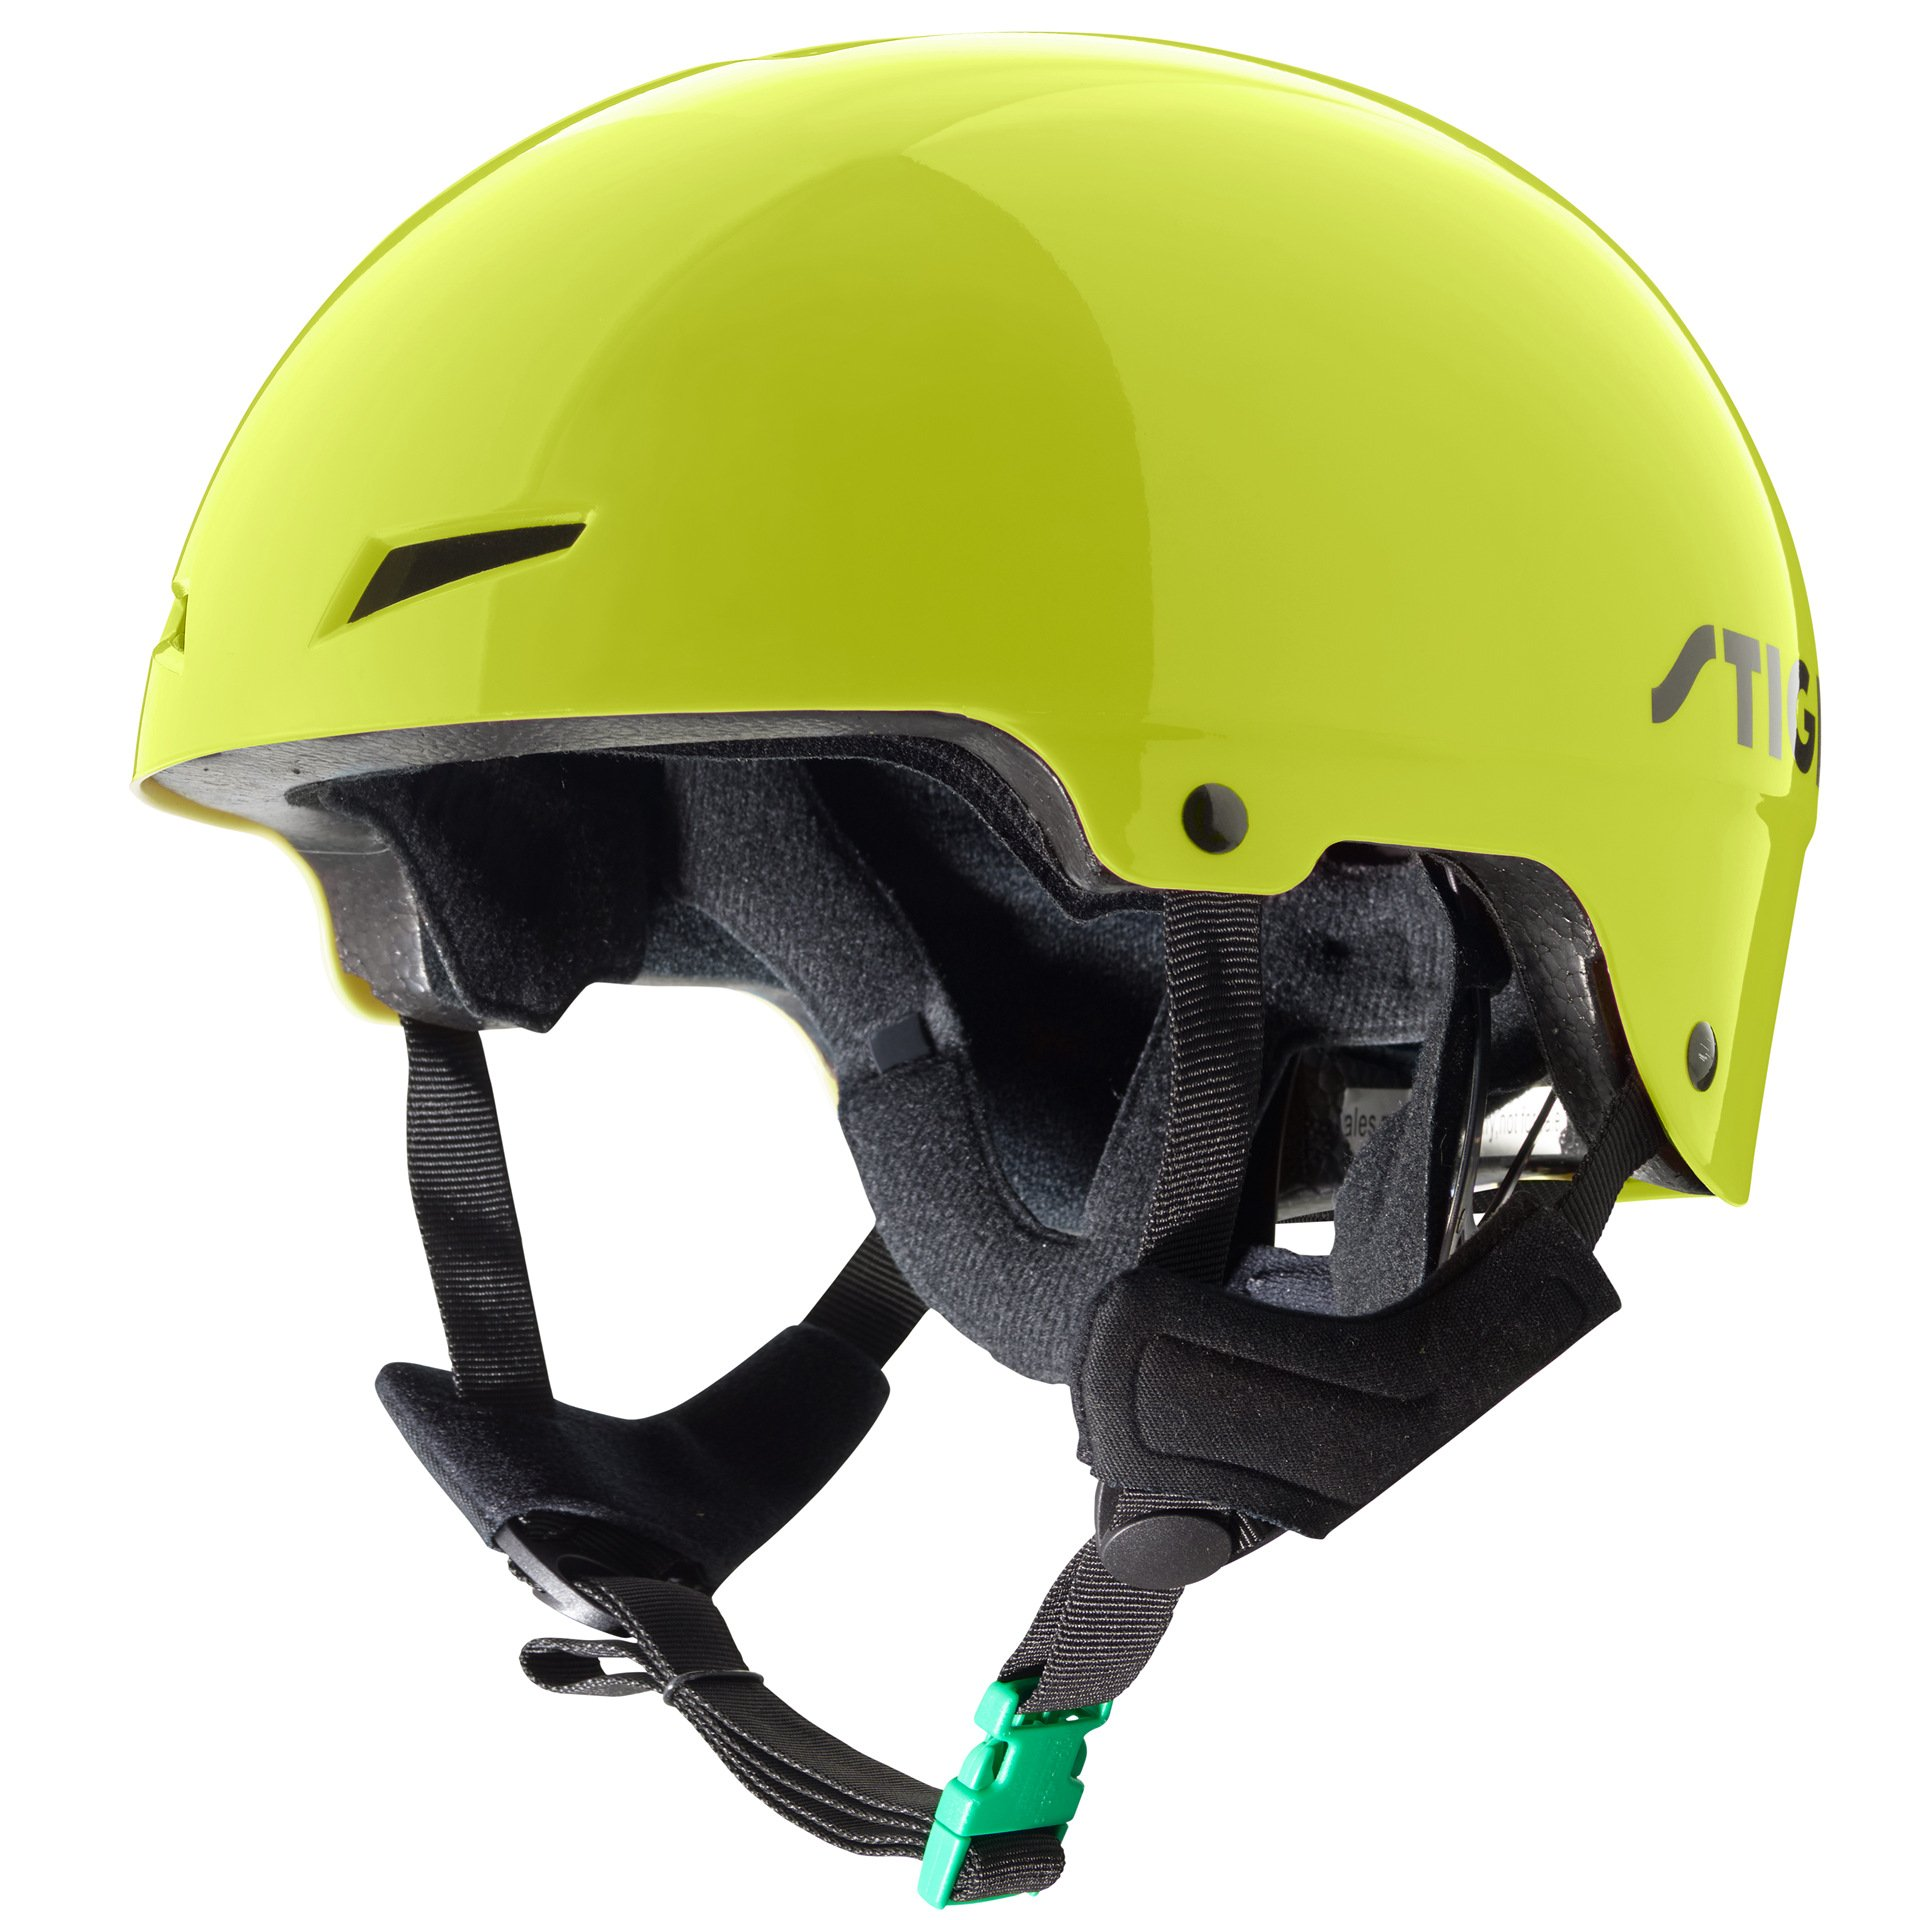 Stiga - Kids Helmet Play - Green M (52-56) (82-5049-05)